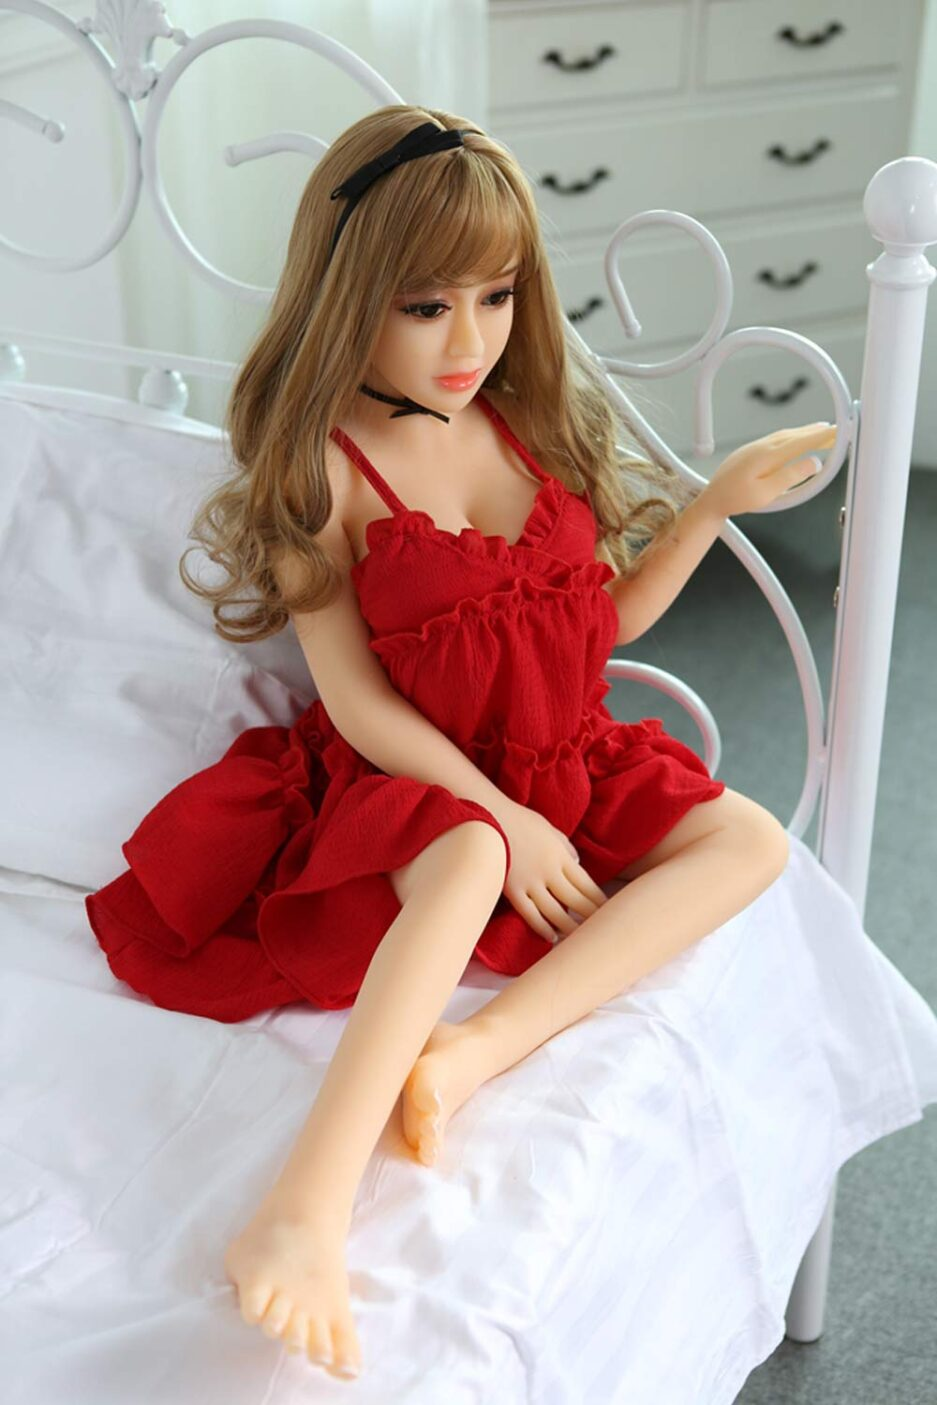 Mini sex doll with hands on the bed railing